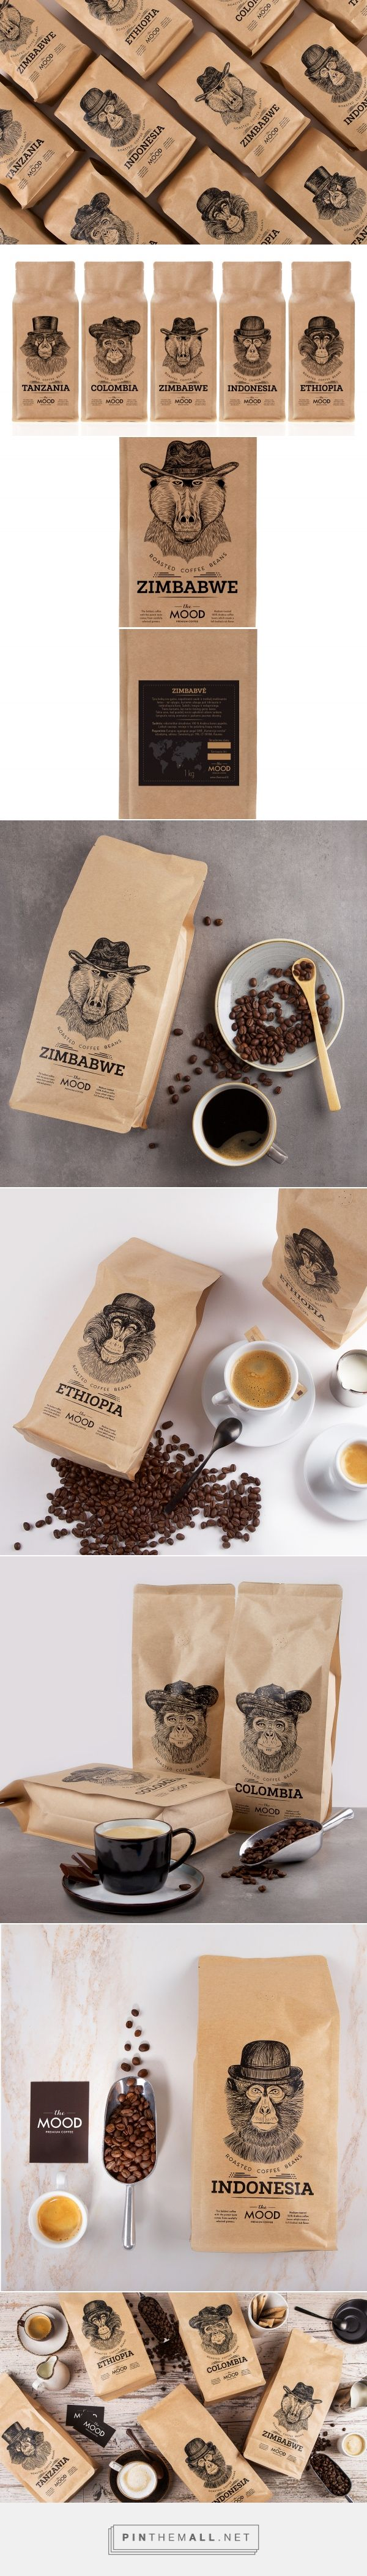 "In ""The Mood"" for Coffee packaging design by Salvita Design - http://www.packagingoftheworld.com/2018/01/in-mood-for-coffee.html"